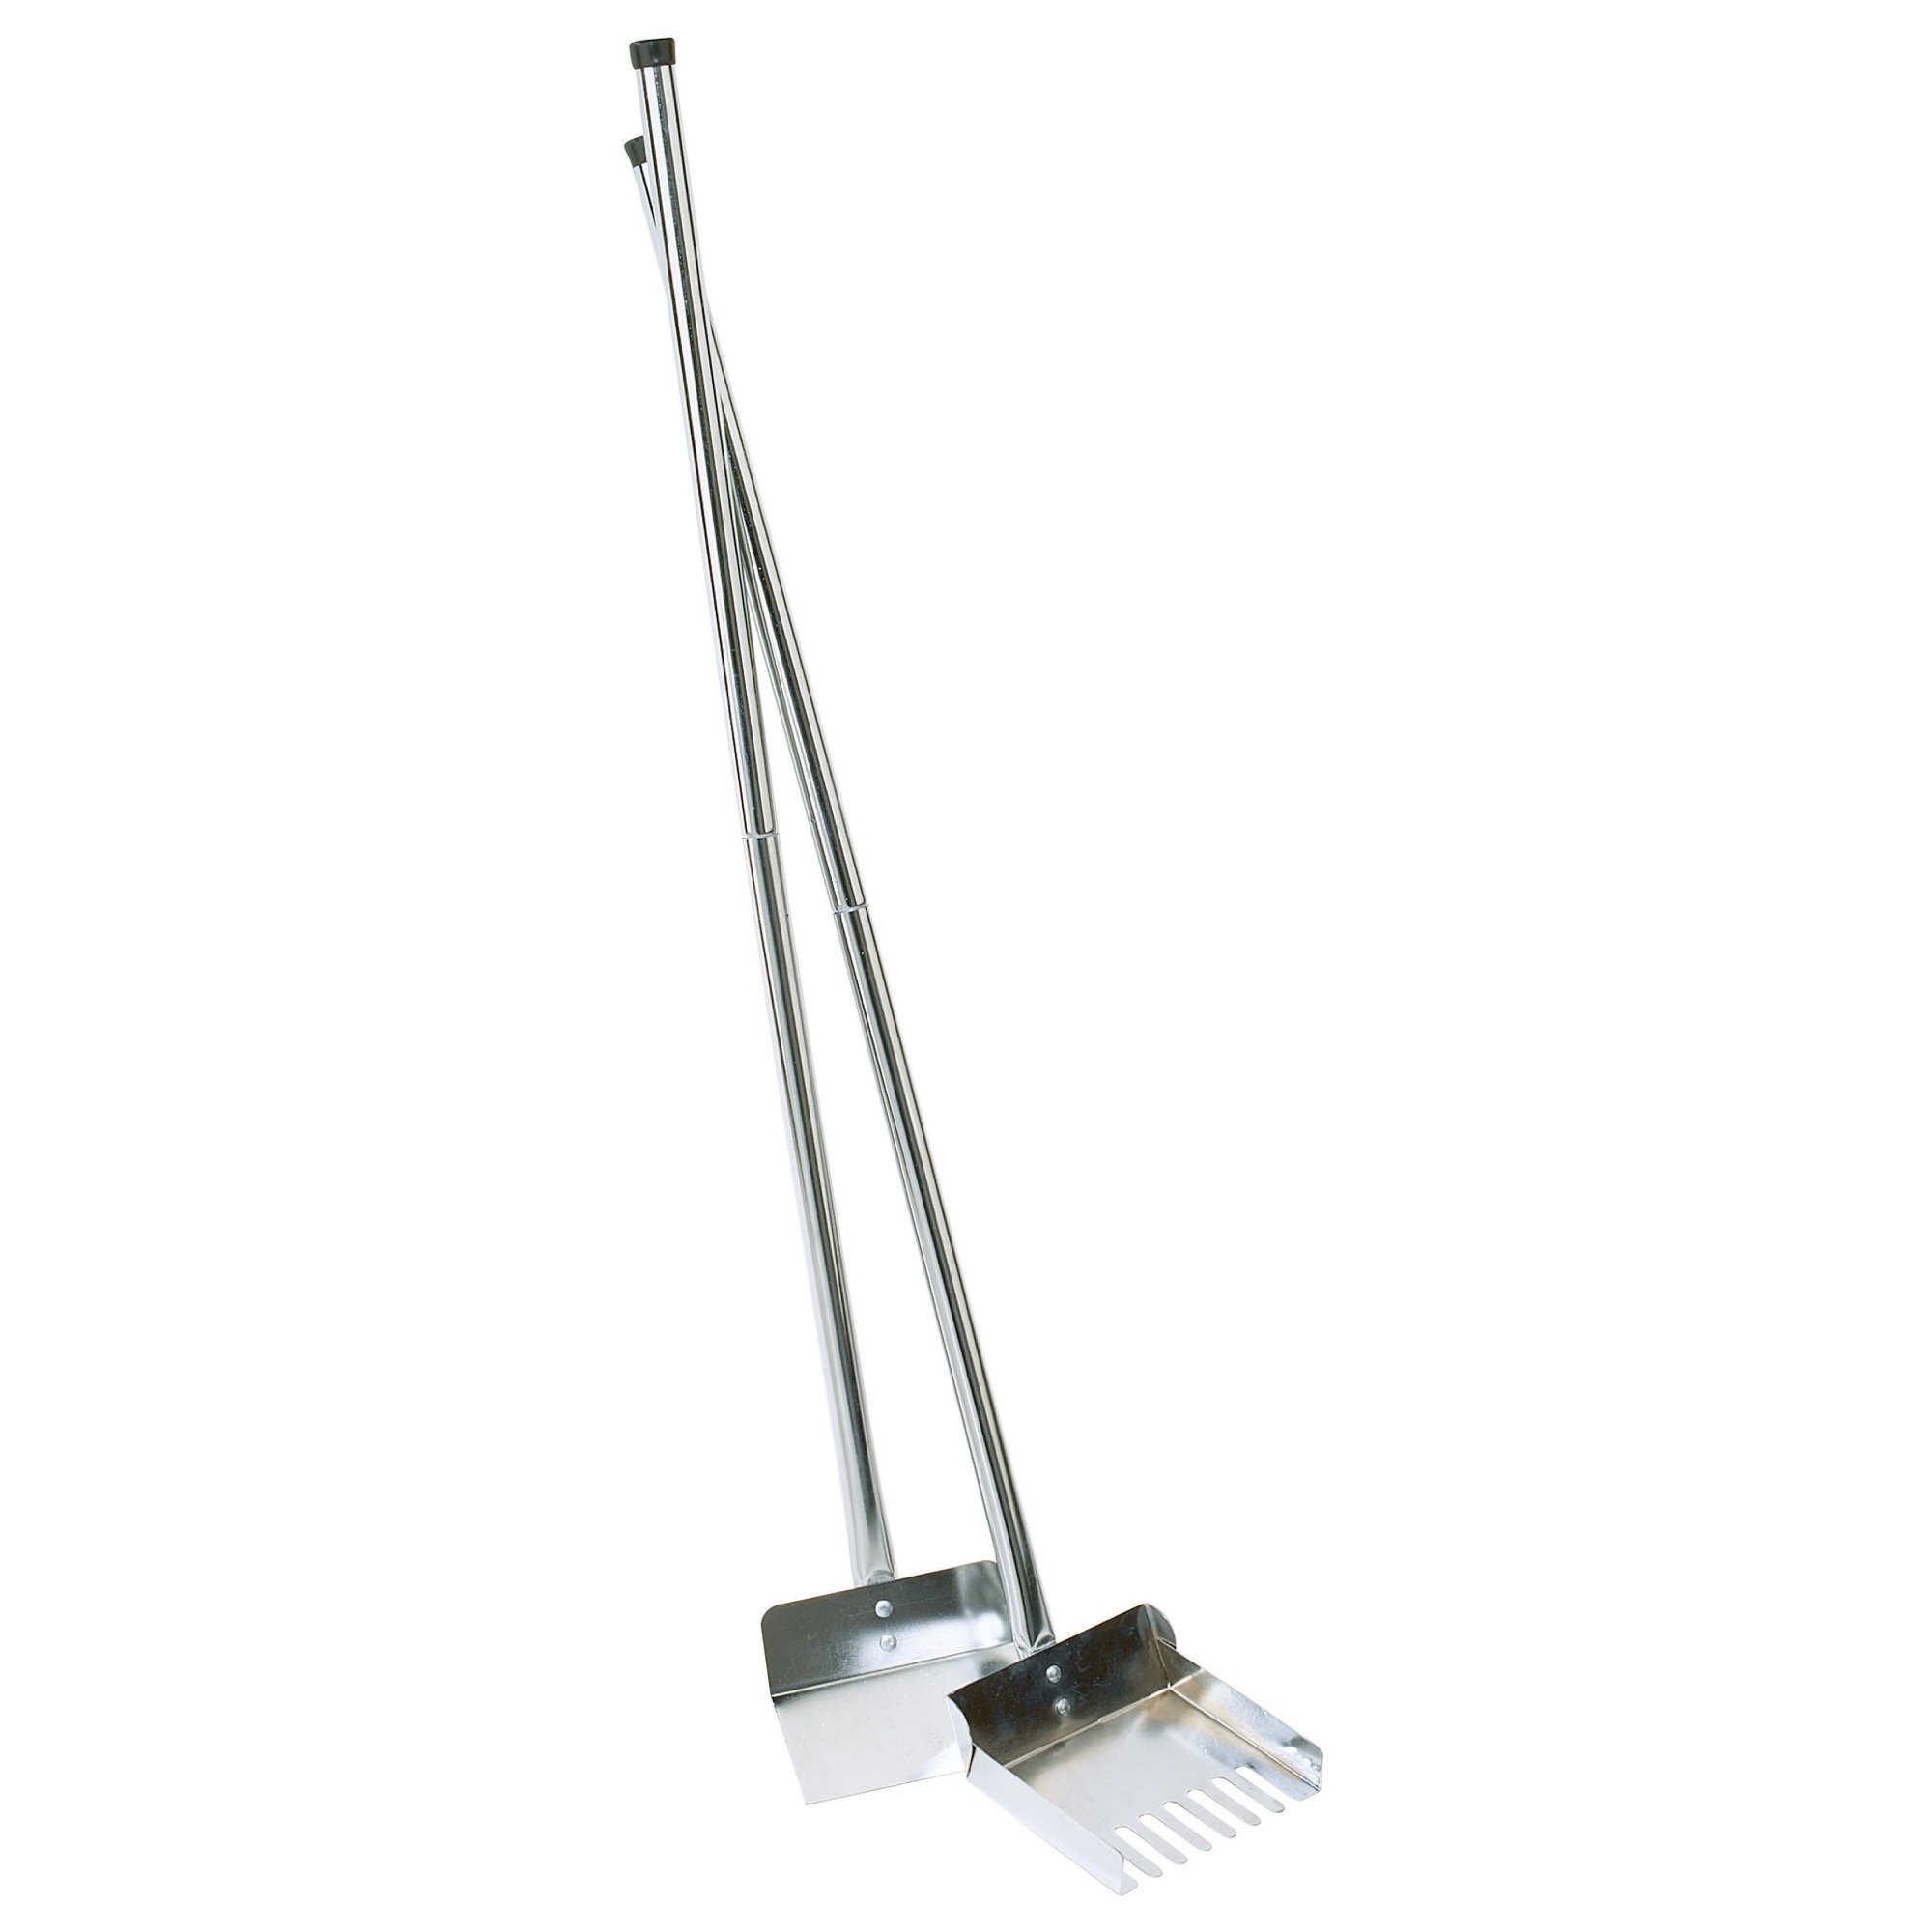 Clean Go Sanitary Dog Poop Scooper, 36'' Length - Uses Chrome-Plated Steel & Rake-Style Tines to Scoop Dog Waste on Grass by Clean Go